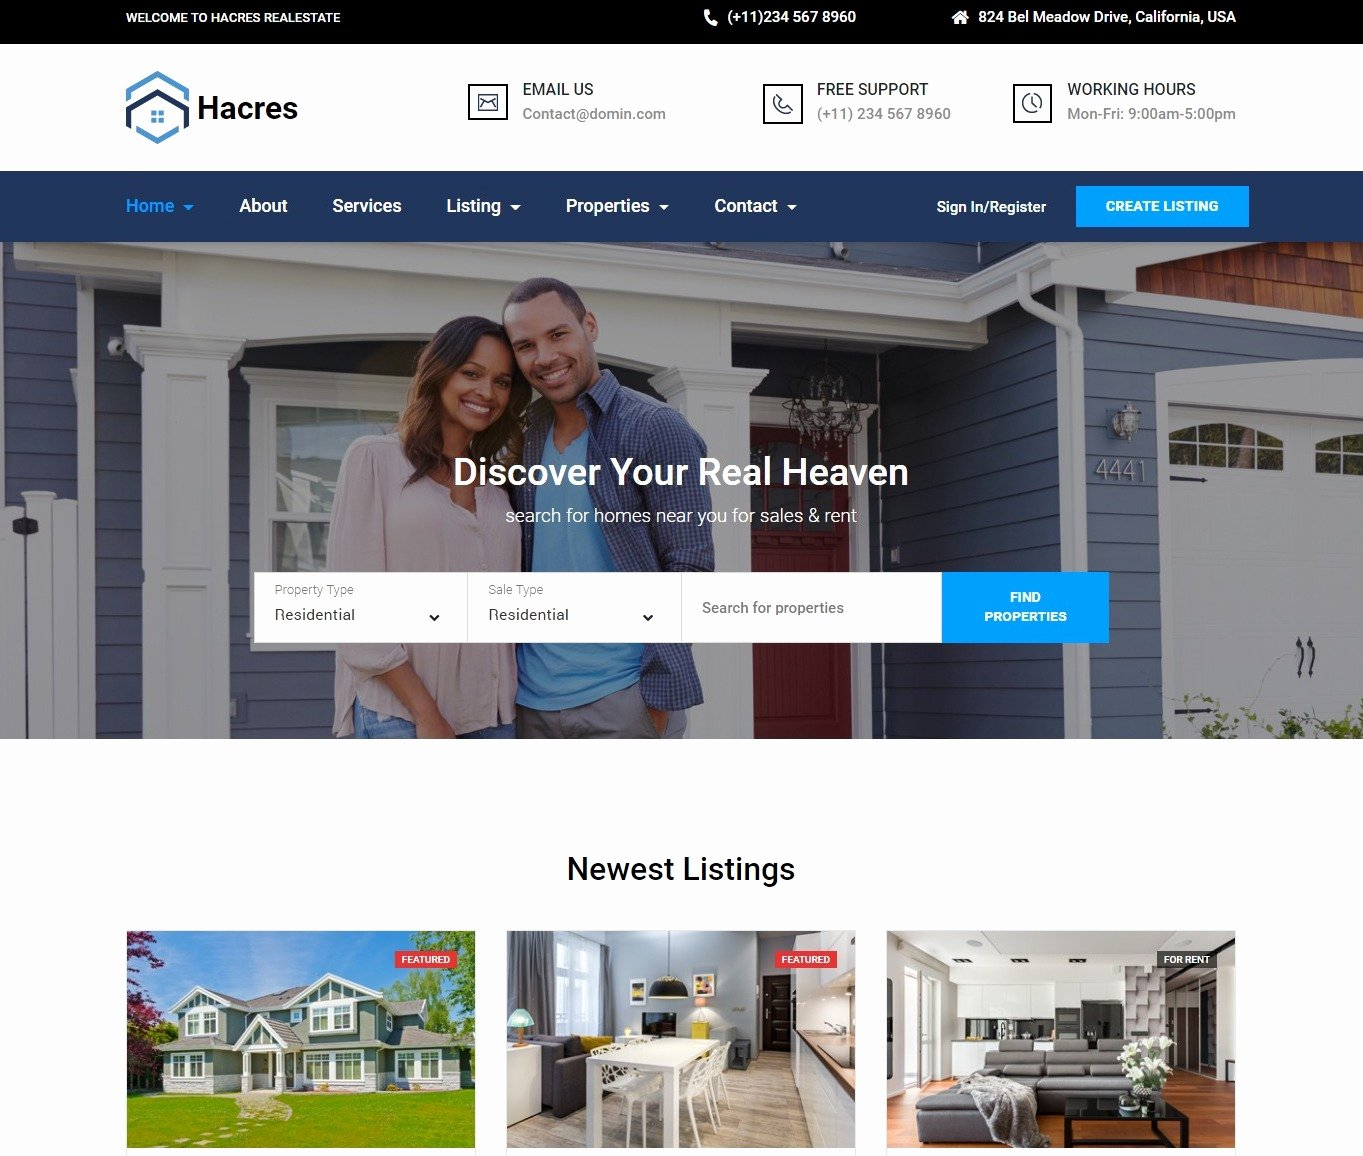 Real Estate Website Template Unique 20 Professional Real Estate Website Template for Realtors